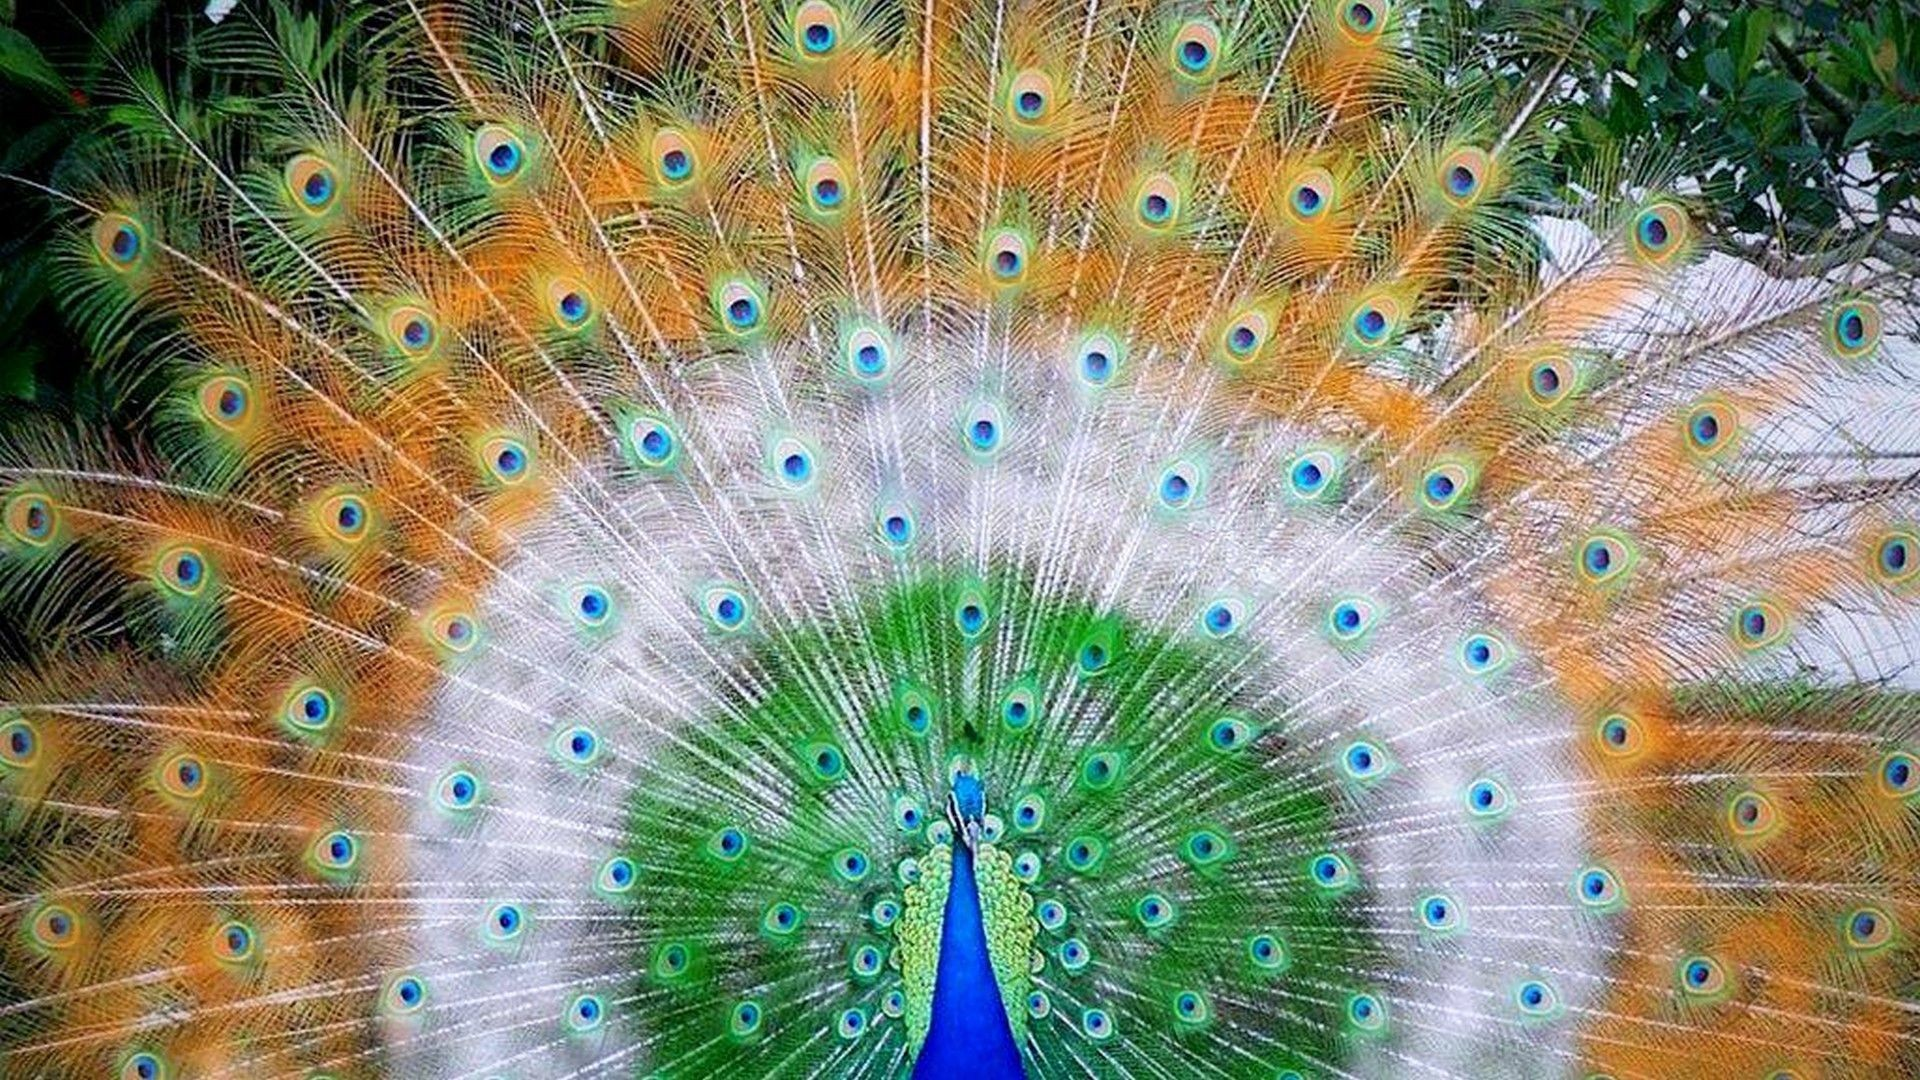 peacock images hd